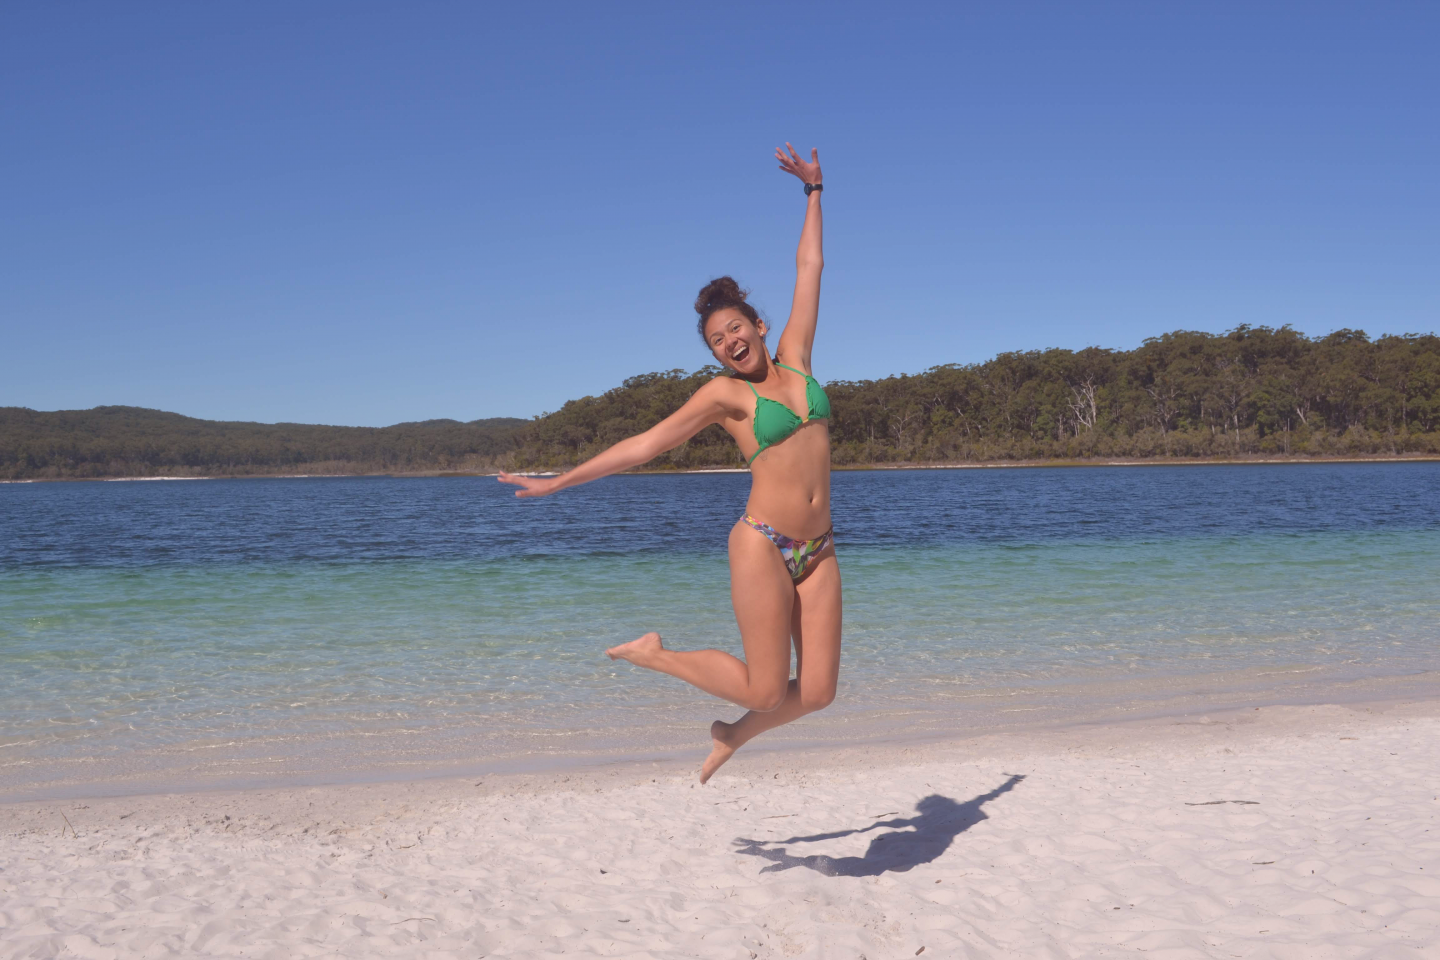 Summer drops: Trip to Fraser Island